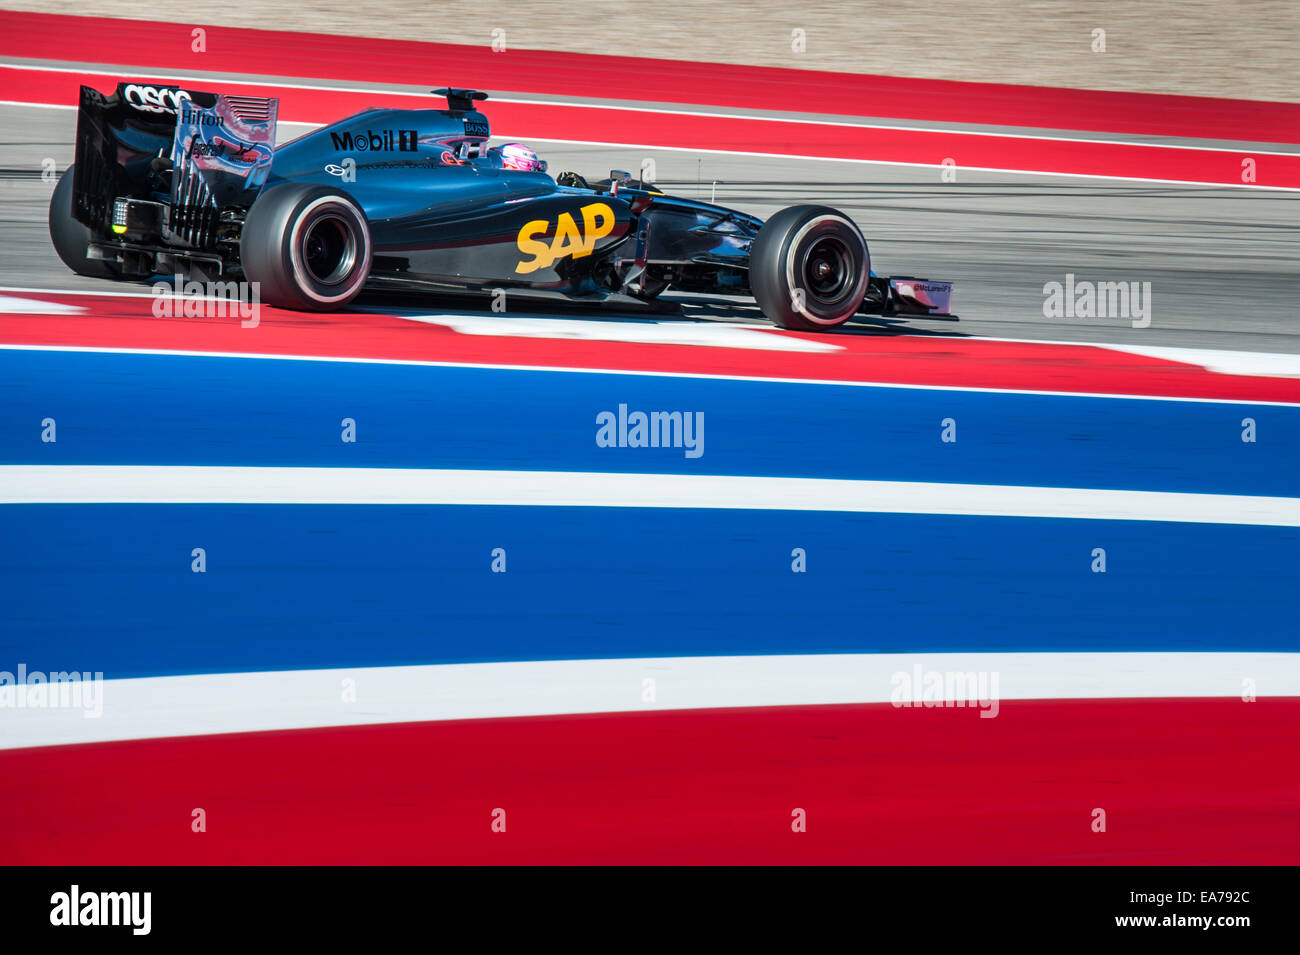 Jenson Button of McLaren during practice for the 2014 United States Grand Prix at Circuit of the Americas. - Stock Image